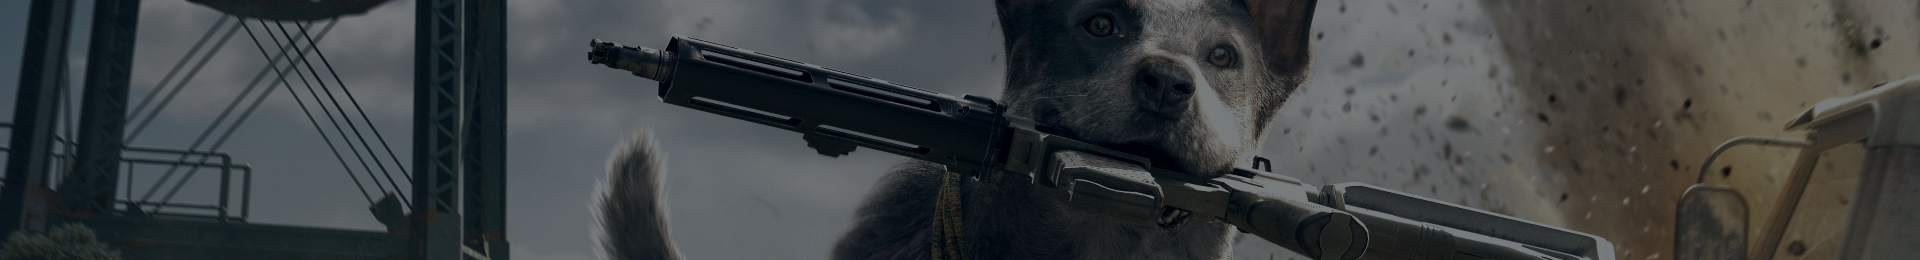 Let's talk about killing animals in video games